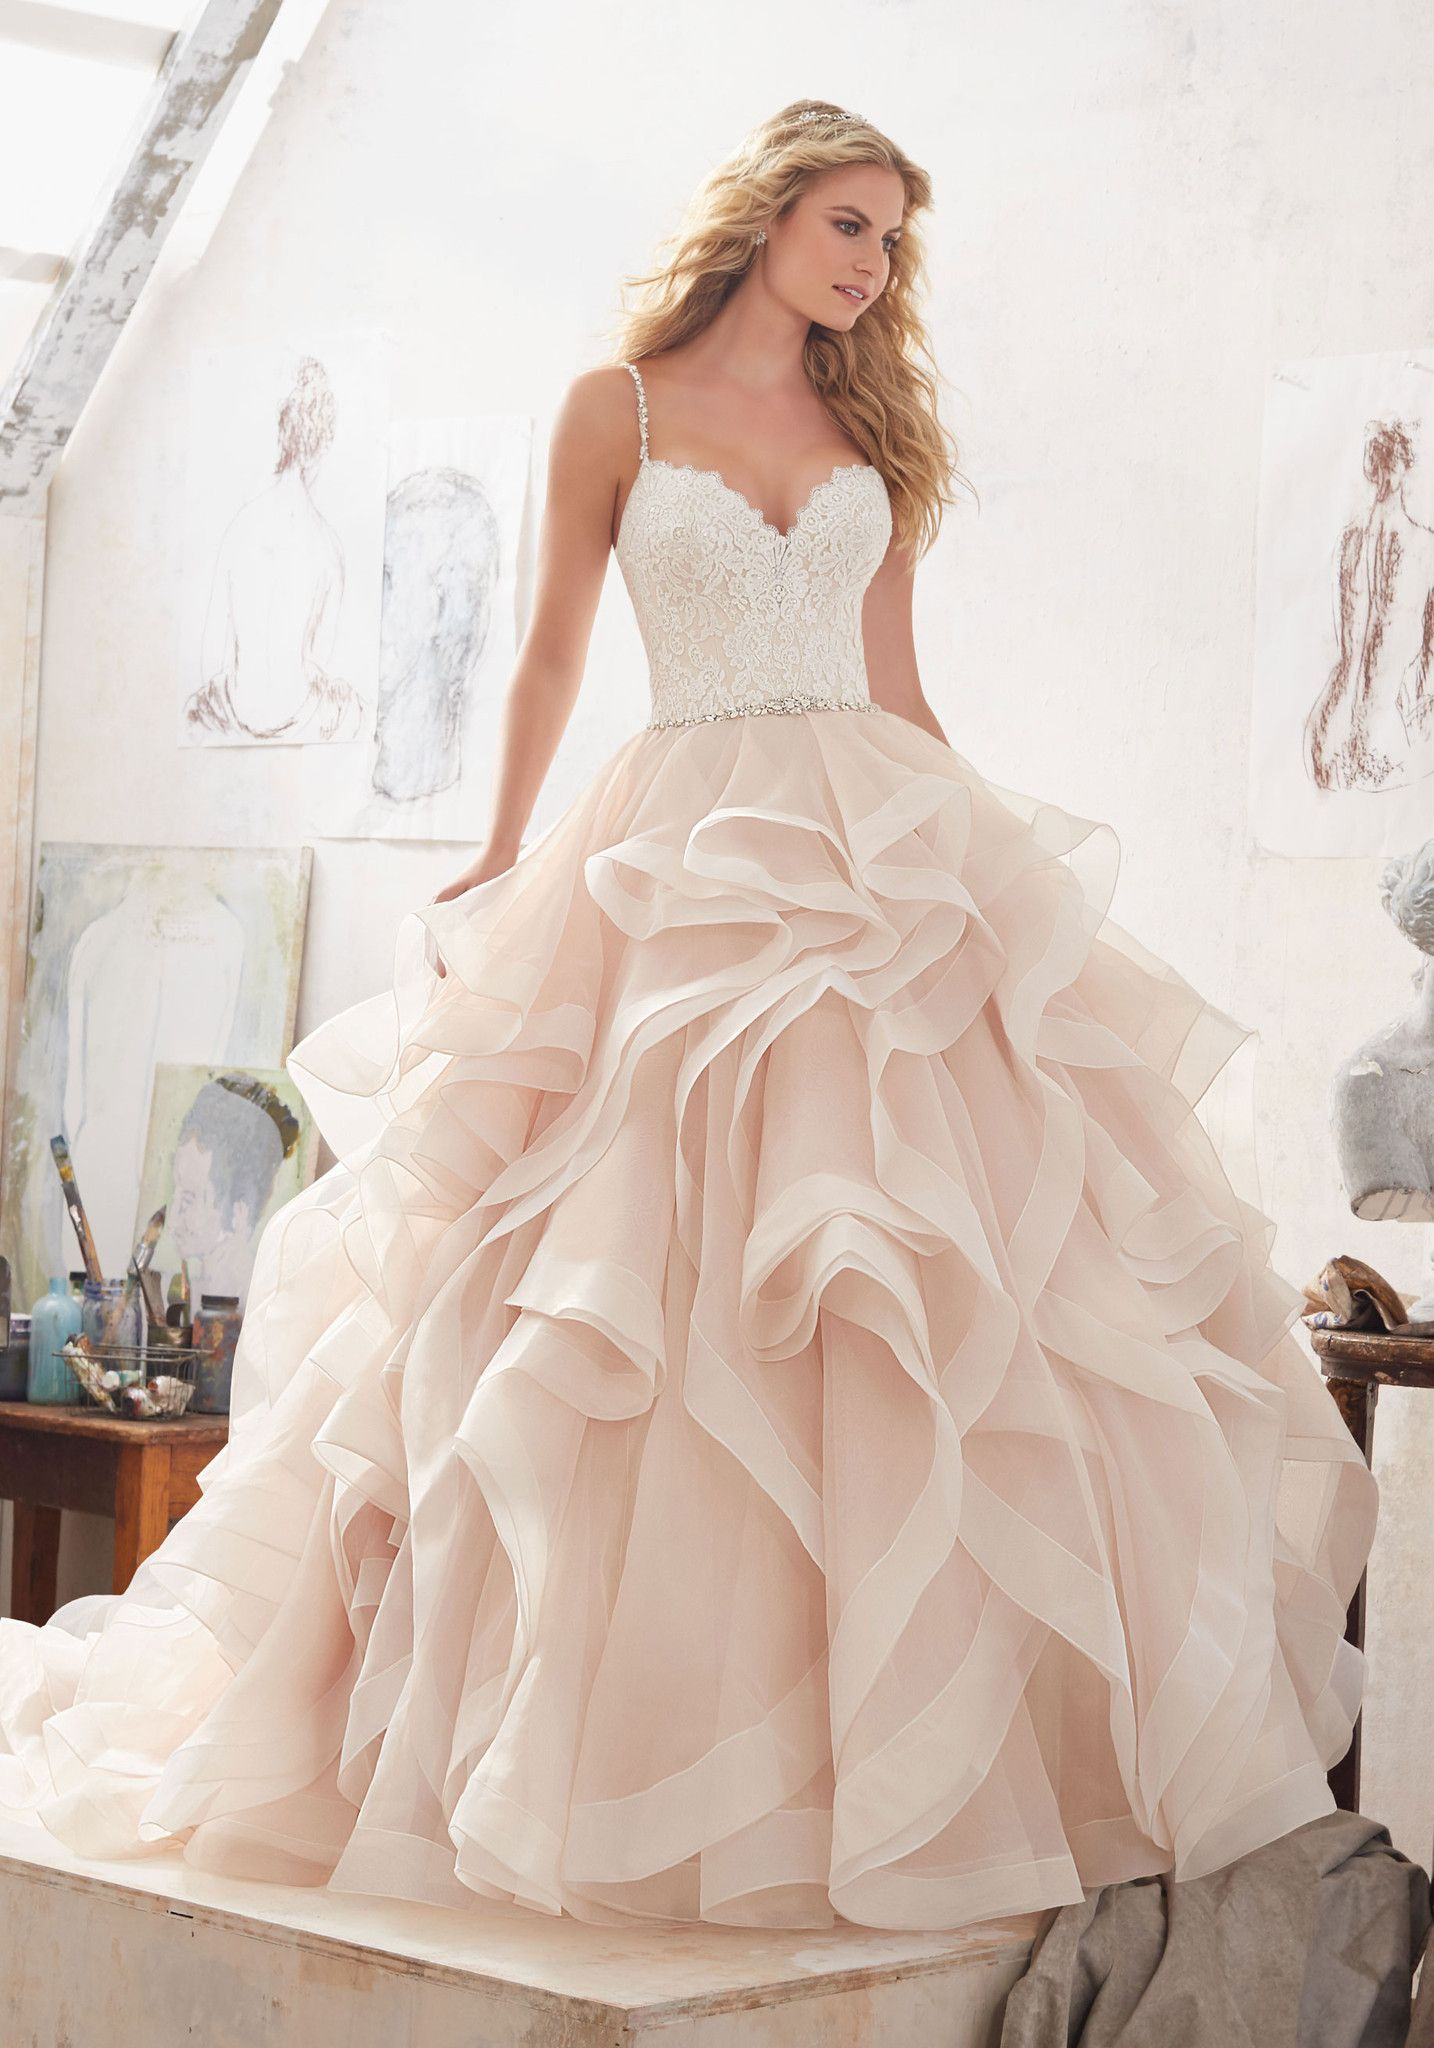 Flowy wedding dress with sleeves  Mori Lee  Marilyn    All Dressed Up Bridal Gown  Mori lee